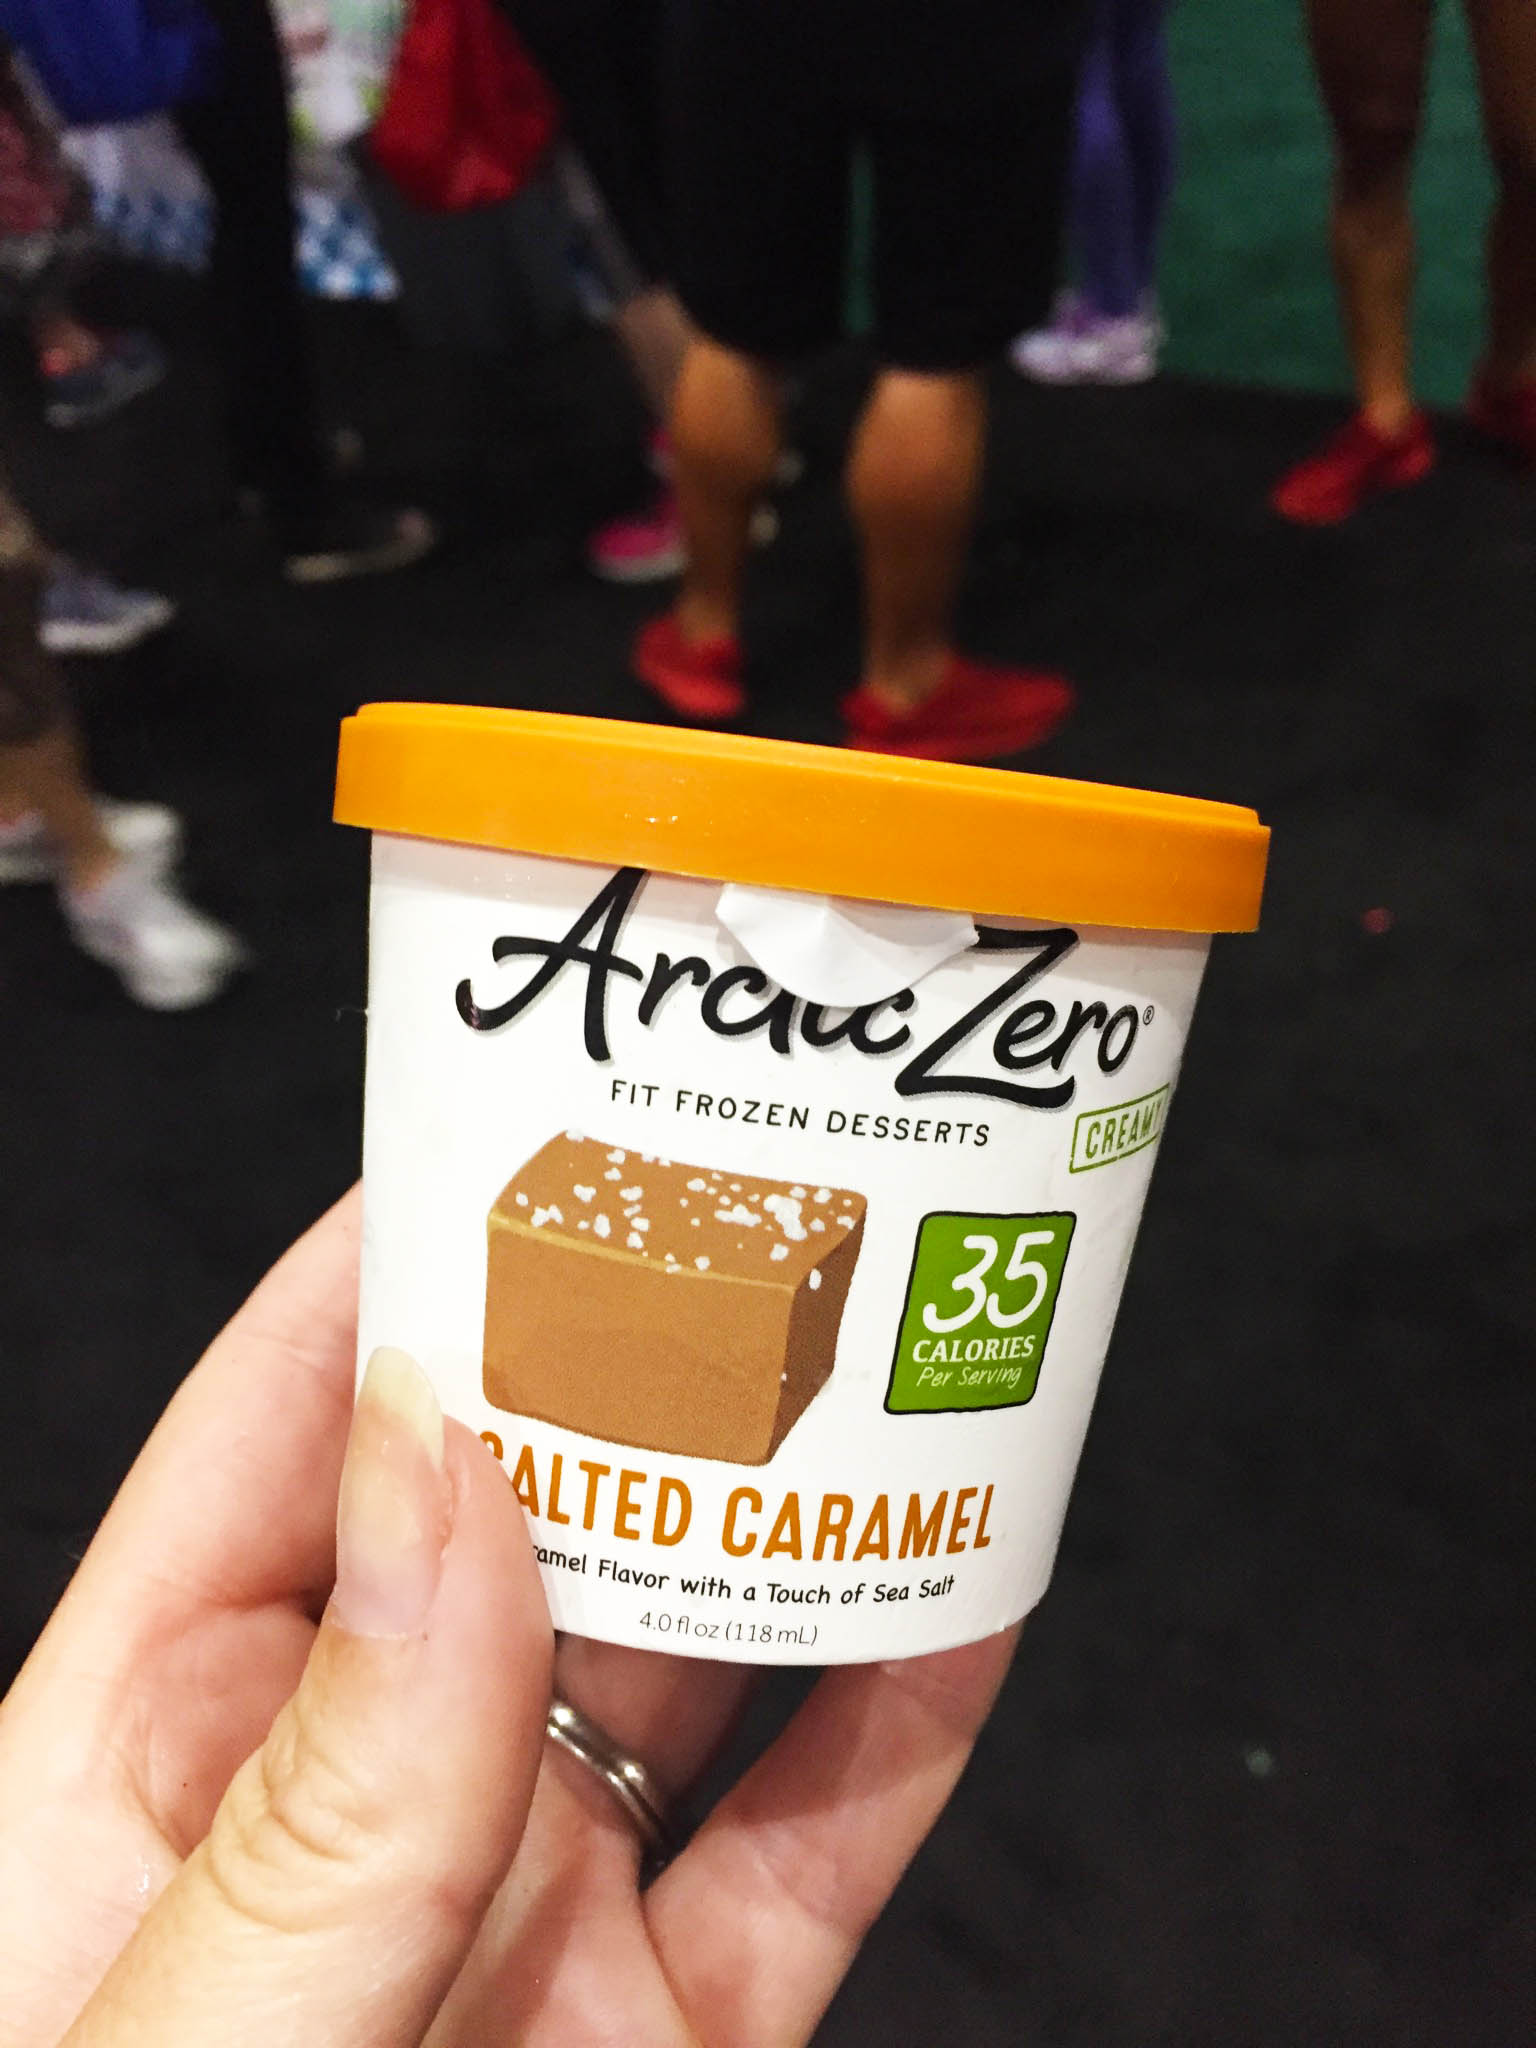 The cutest little protein ice cream cup that I ever did see.